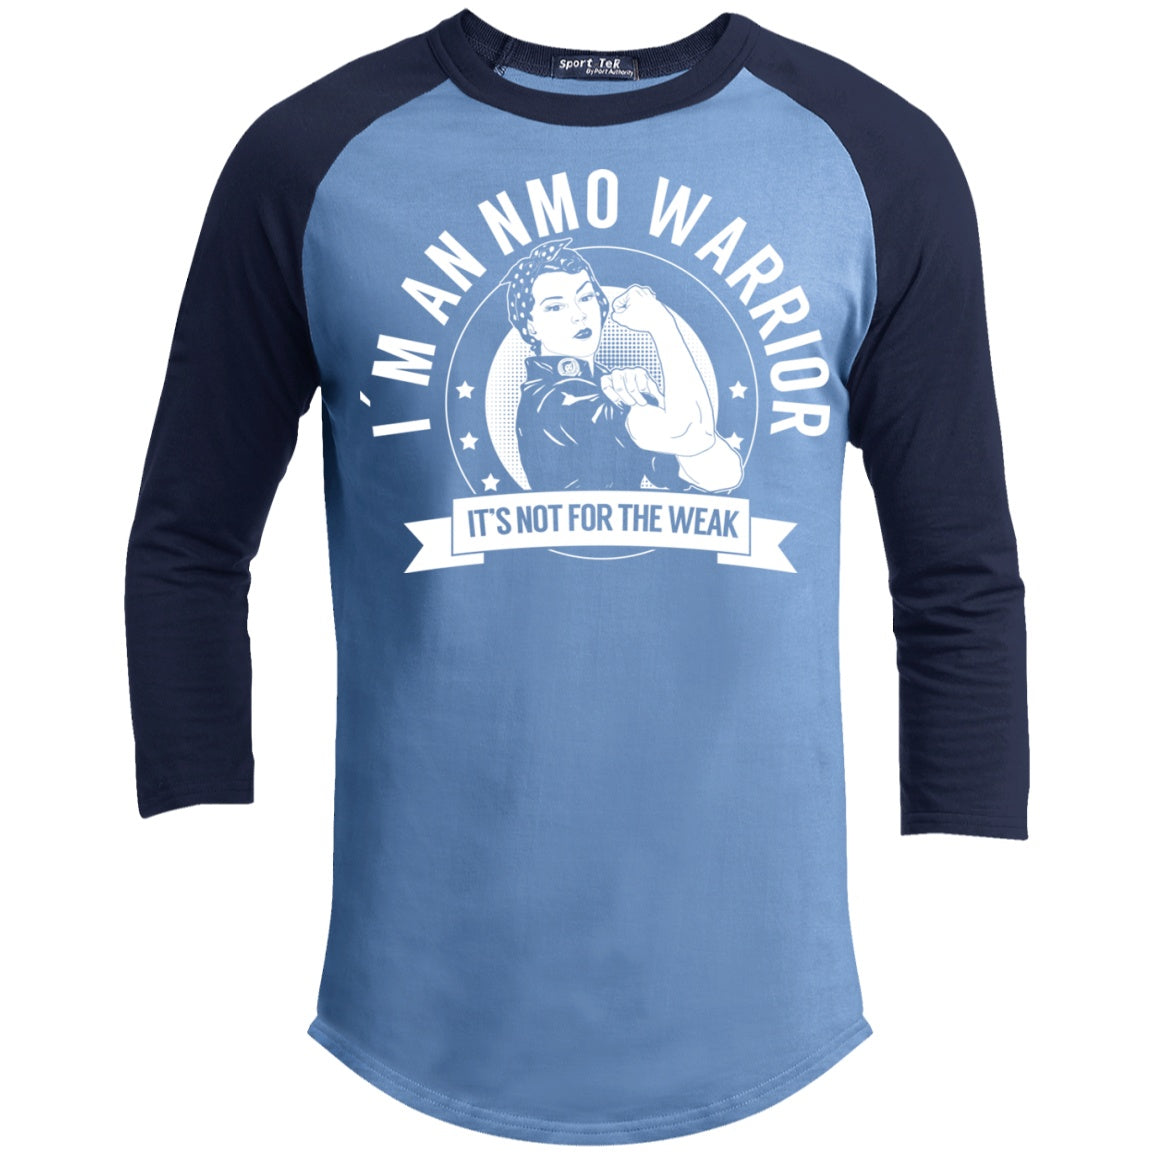 Neuromyelitis Optica - NMO Warrior NFTW Baseball Shirt - The Unchargeables